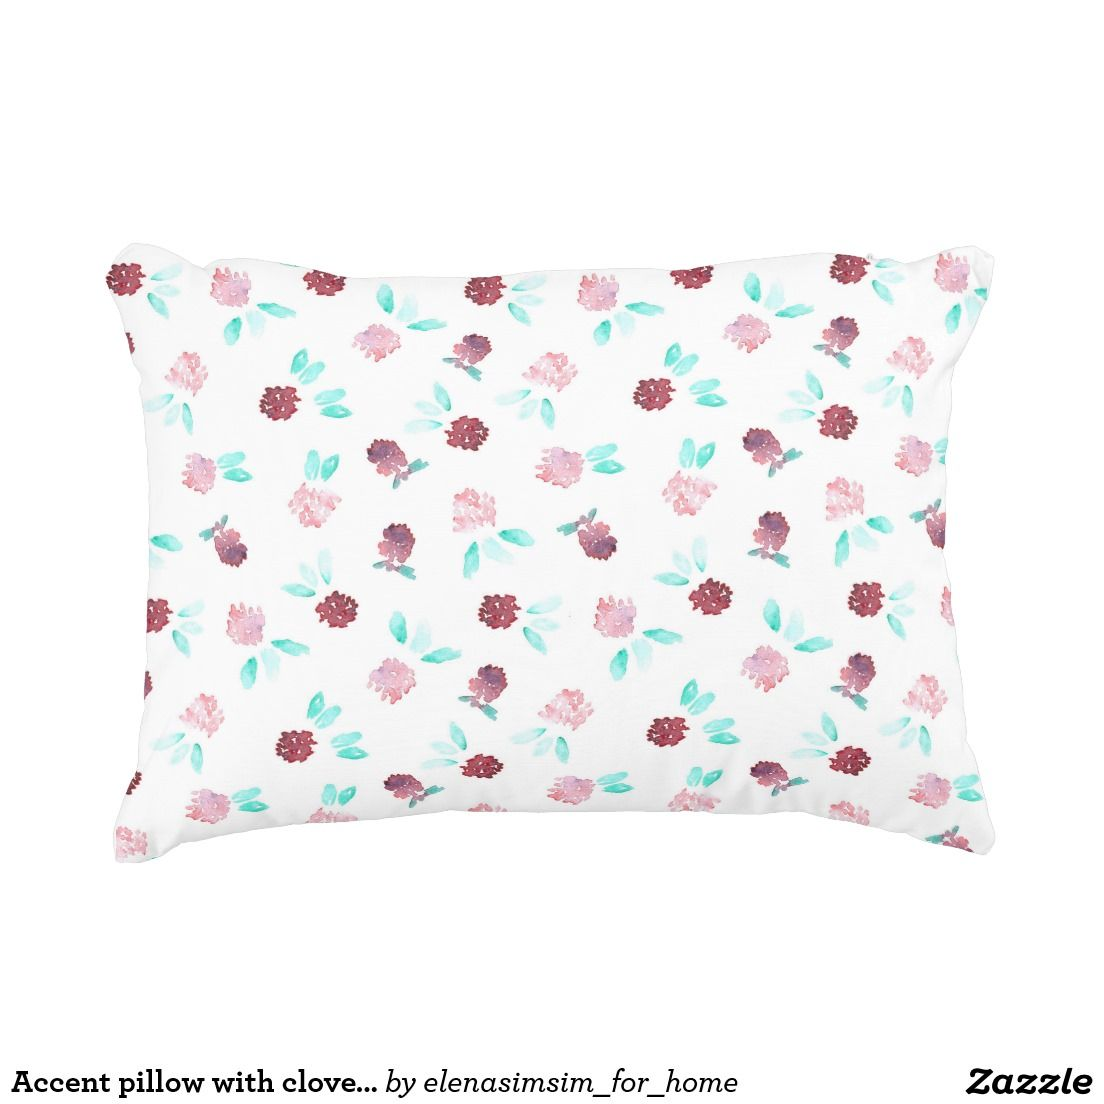 Accent pillow with clover flowers